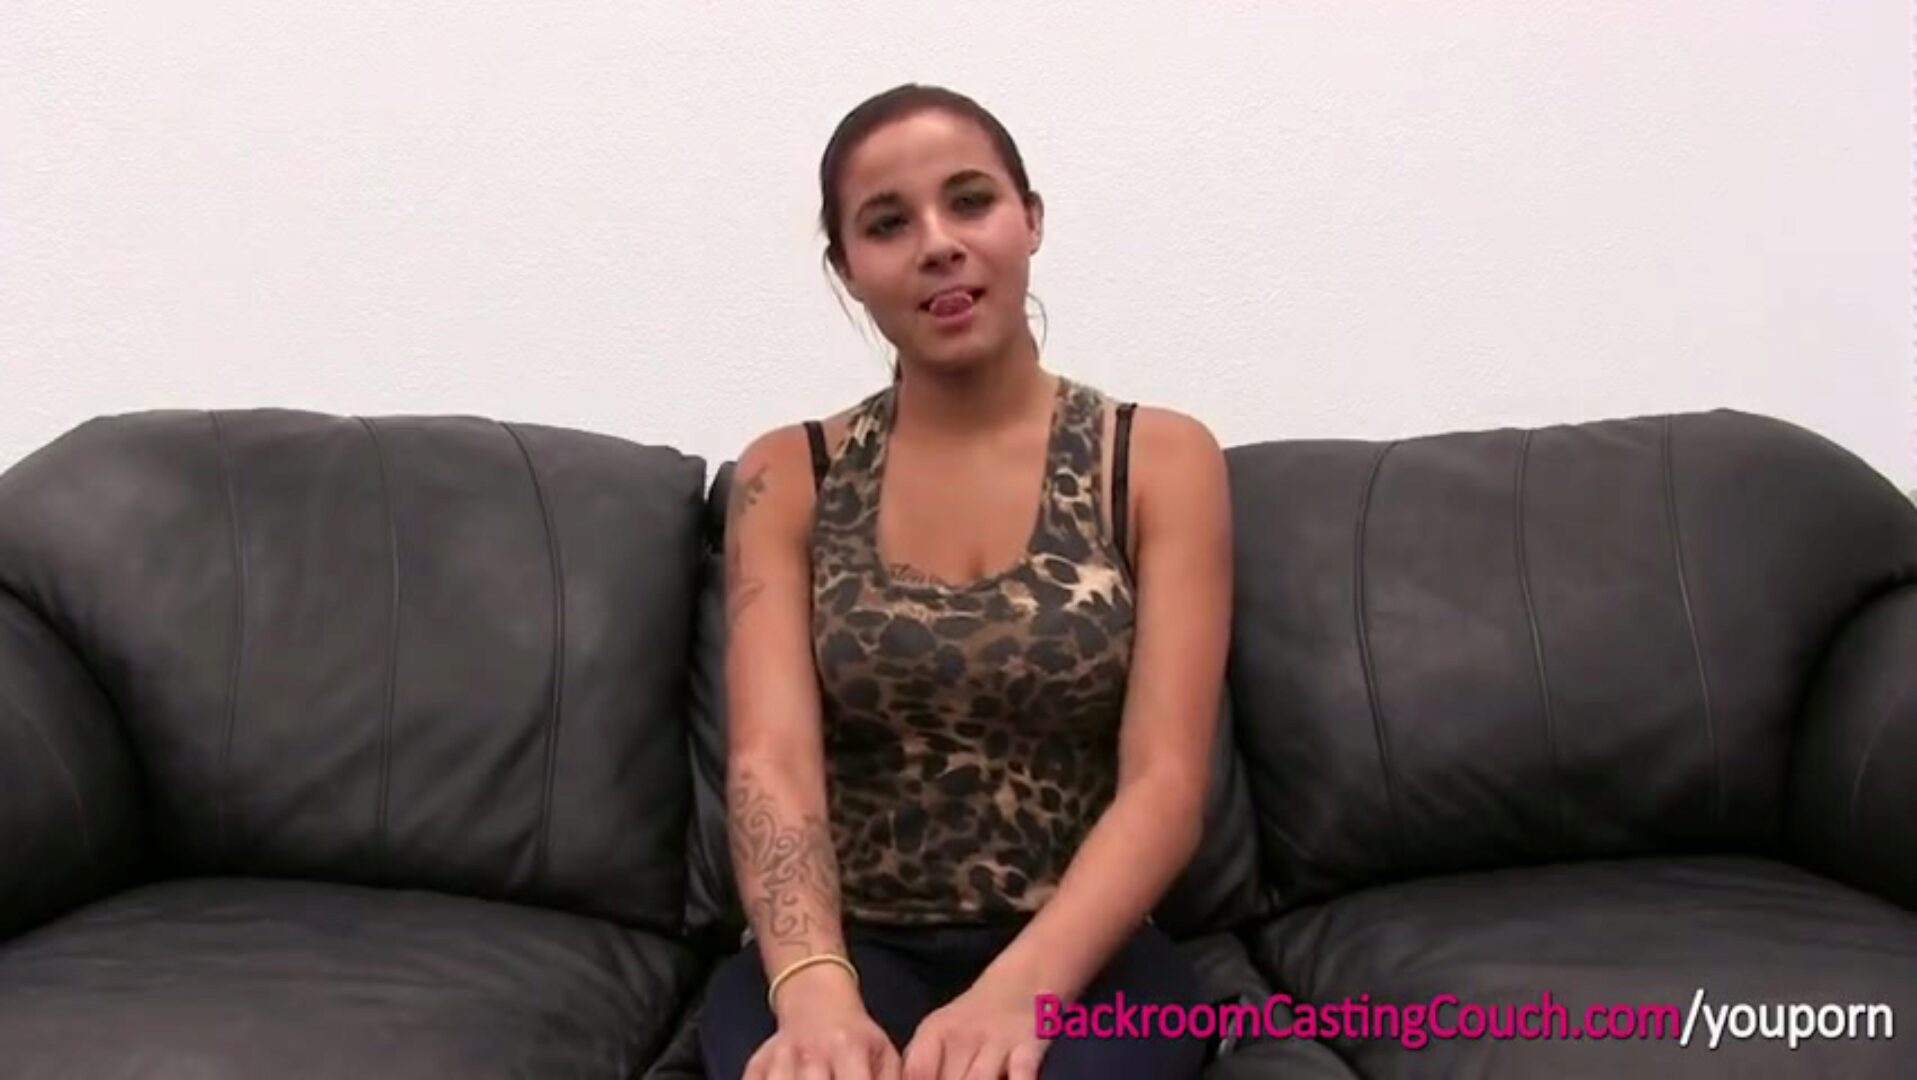 EXCLUSIVE FULL VIDEO - INCREDIBLE AUDREY FROM BACKROOM CASTING COUCH Exclusive! The total movie of the epic Audrey on Backroom Casting Couch.